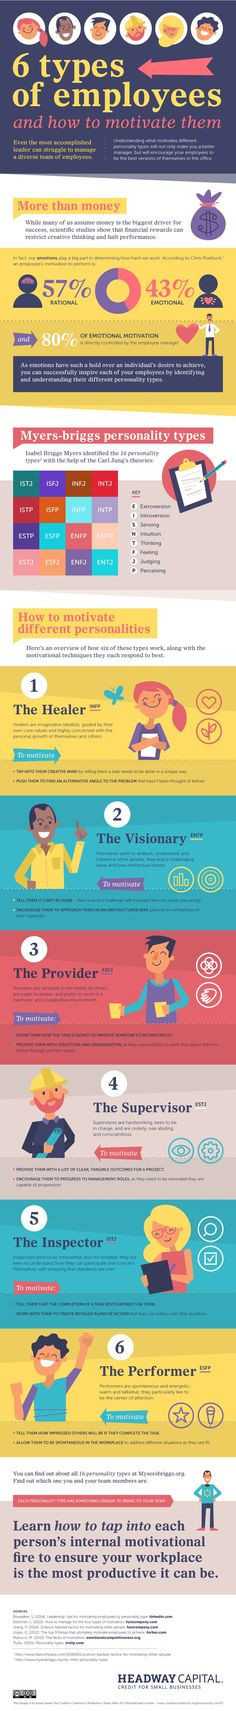 6 Types Of Employees And How To Motivate Them #Infographic #Employee #HowTo